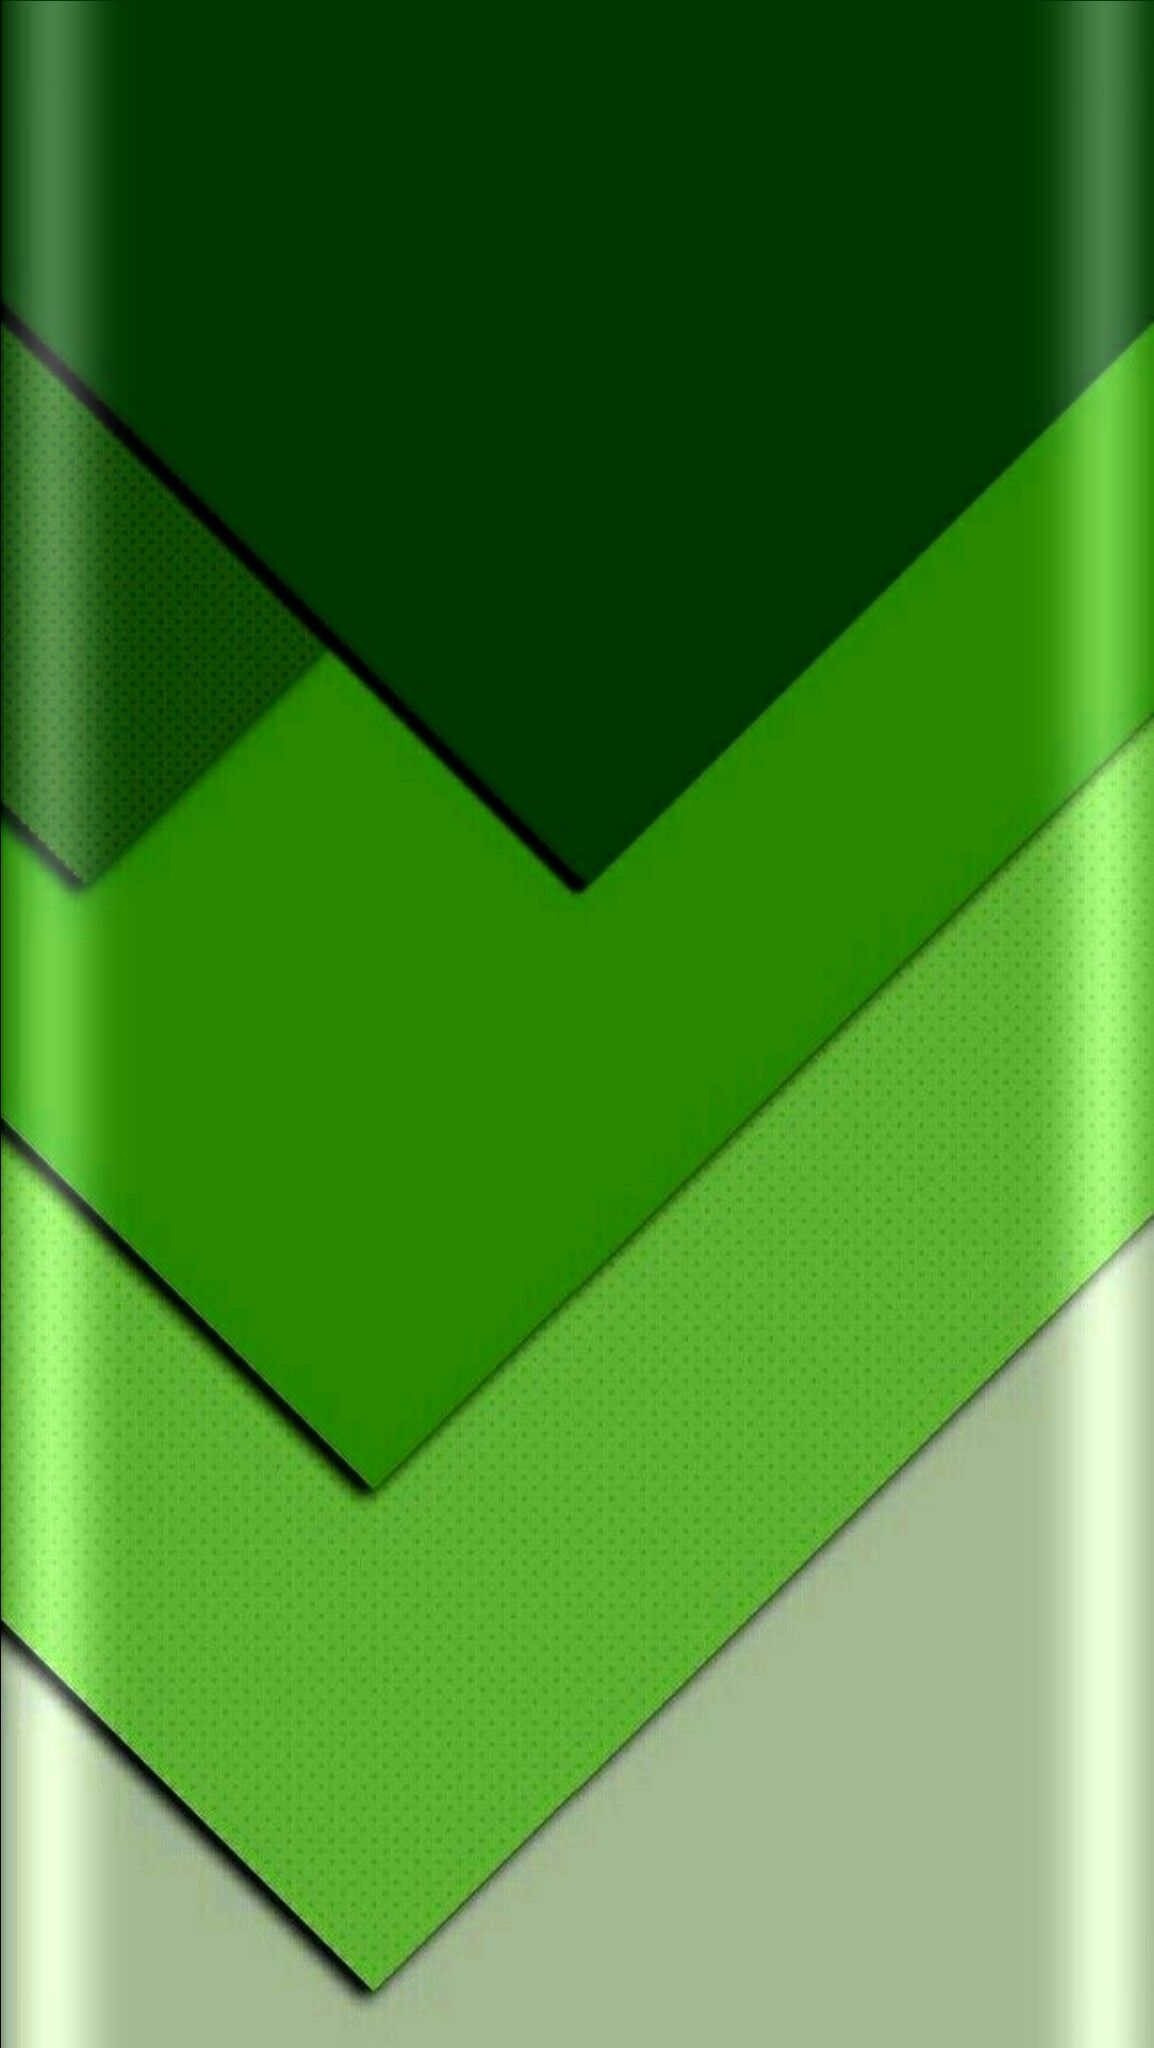 Green Abstract Wallpaper Abstract And Geometric Wallpapers